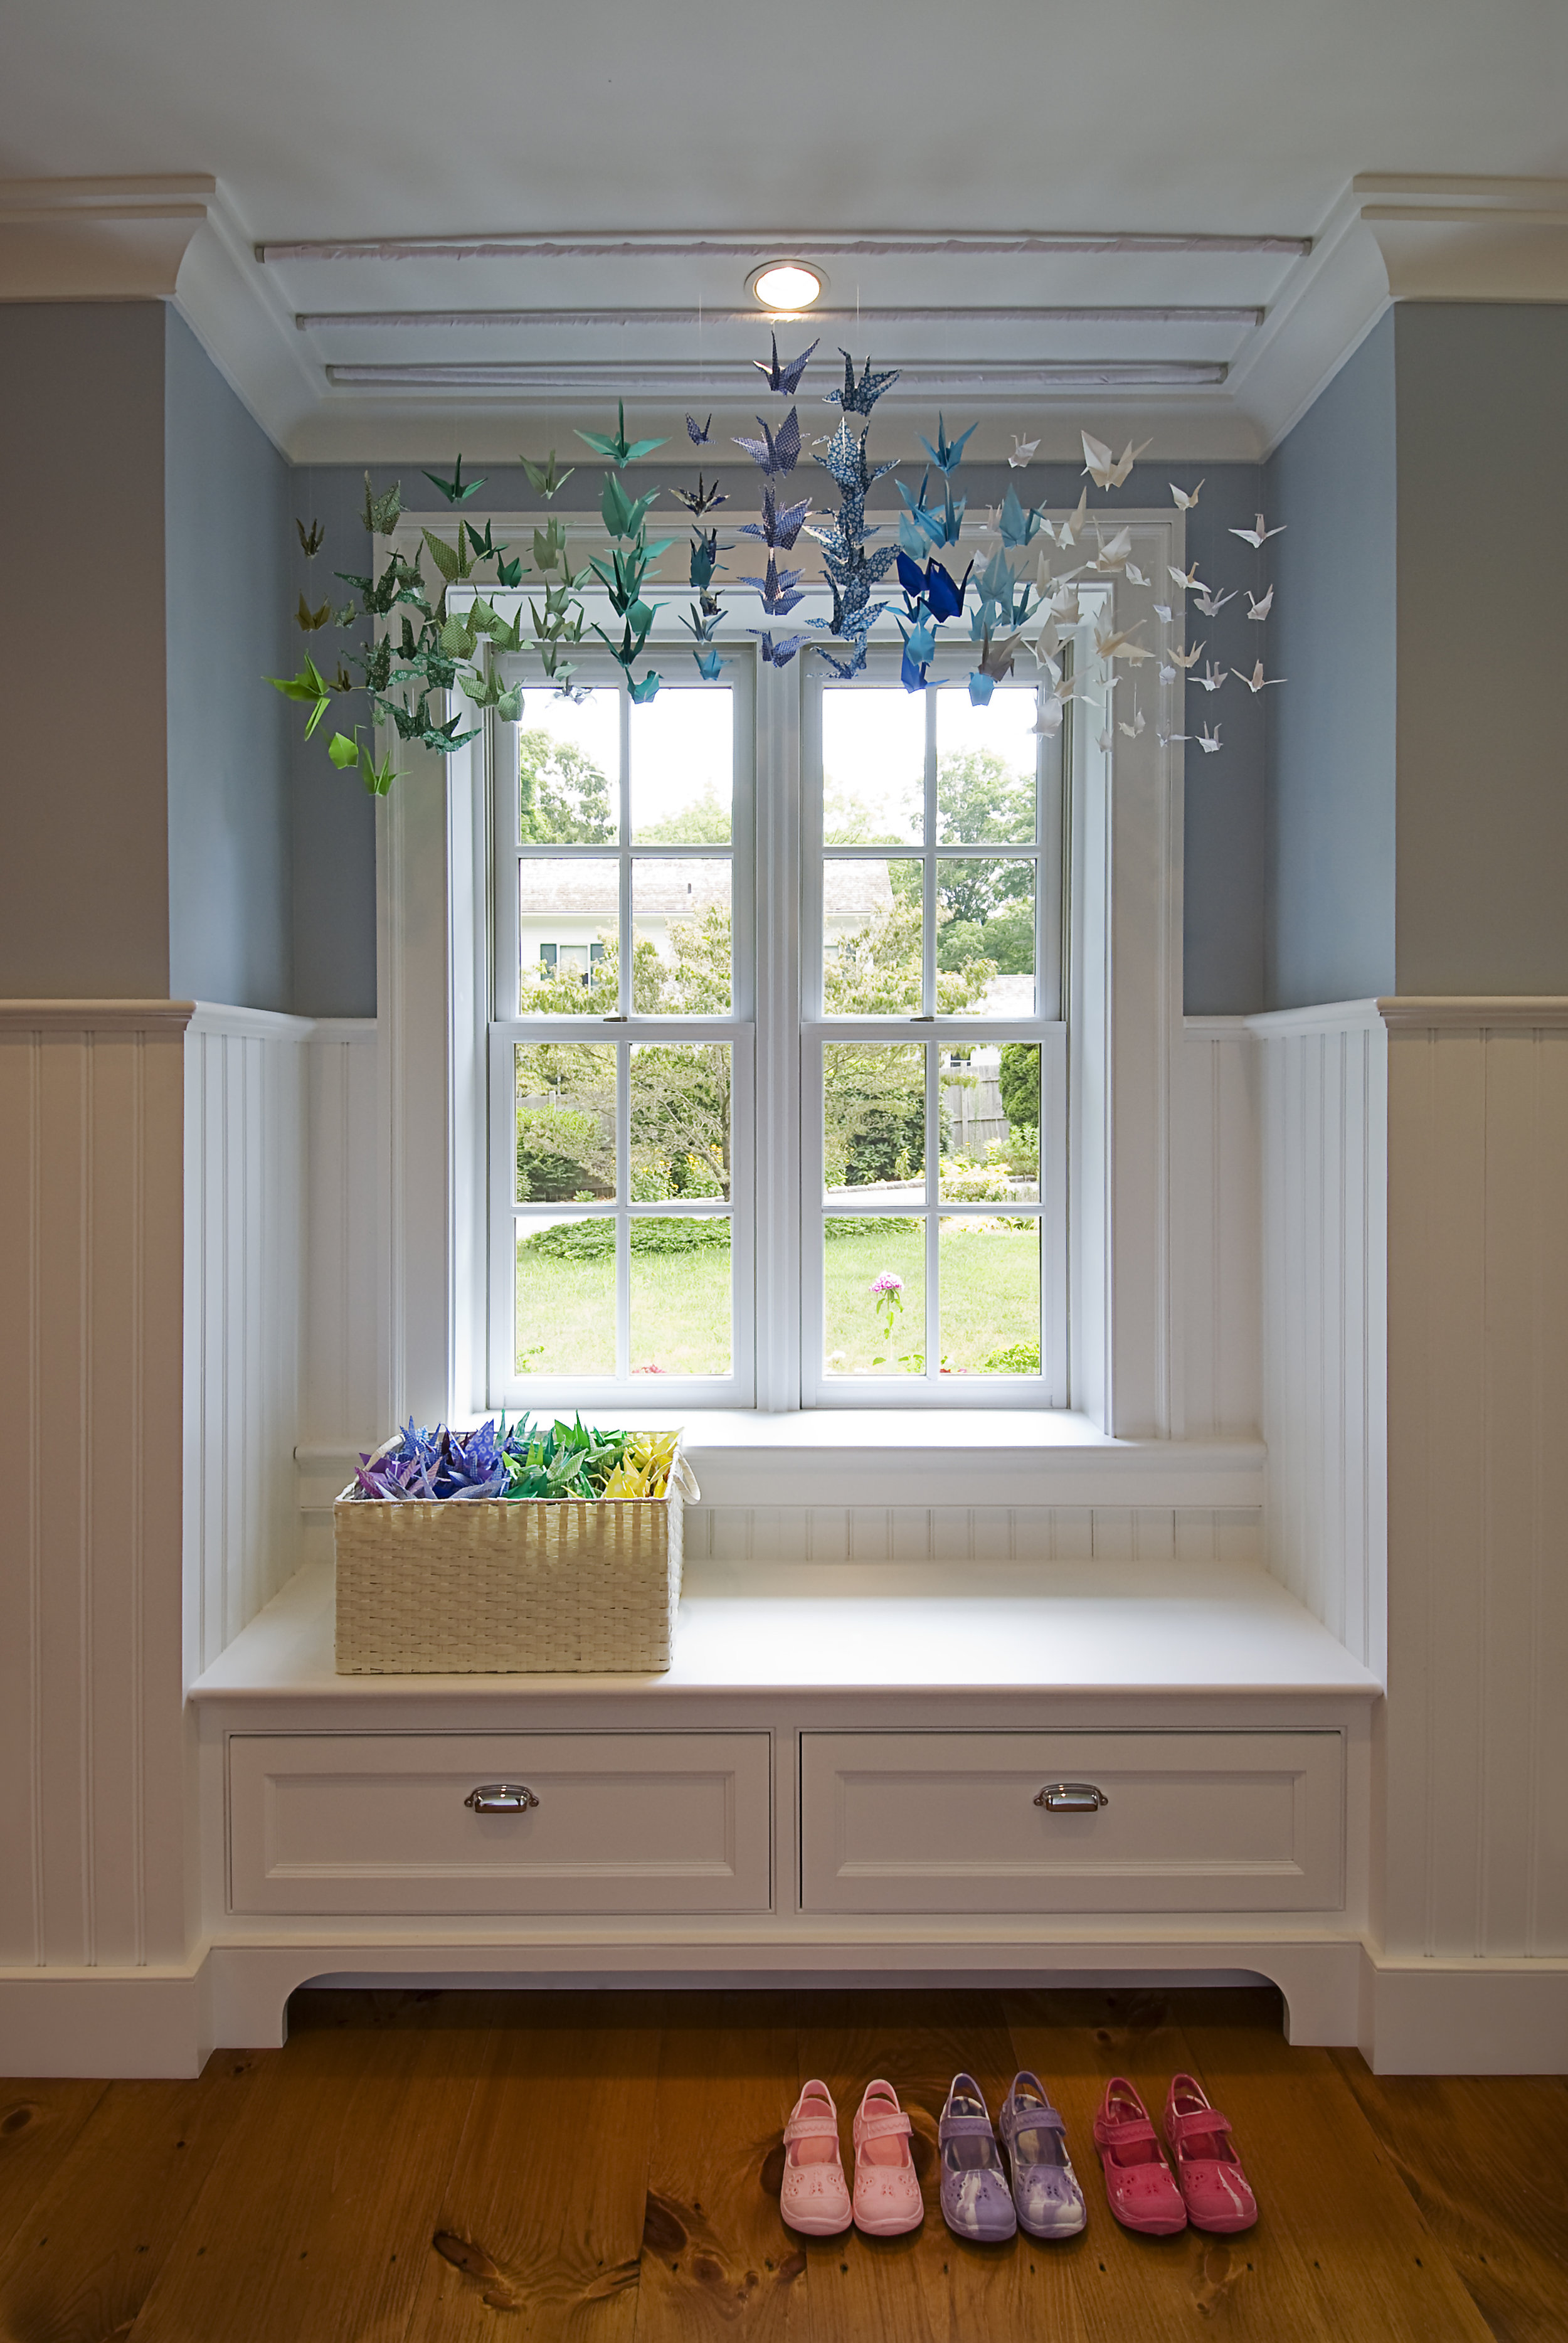 Window seats add comfort and charm to a small hall.